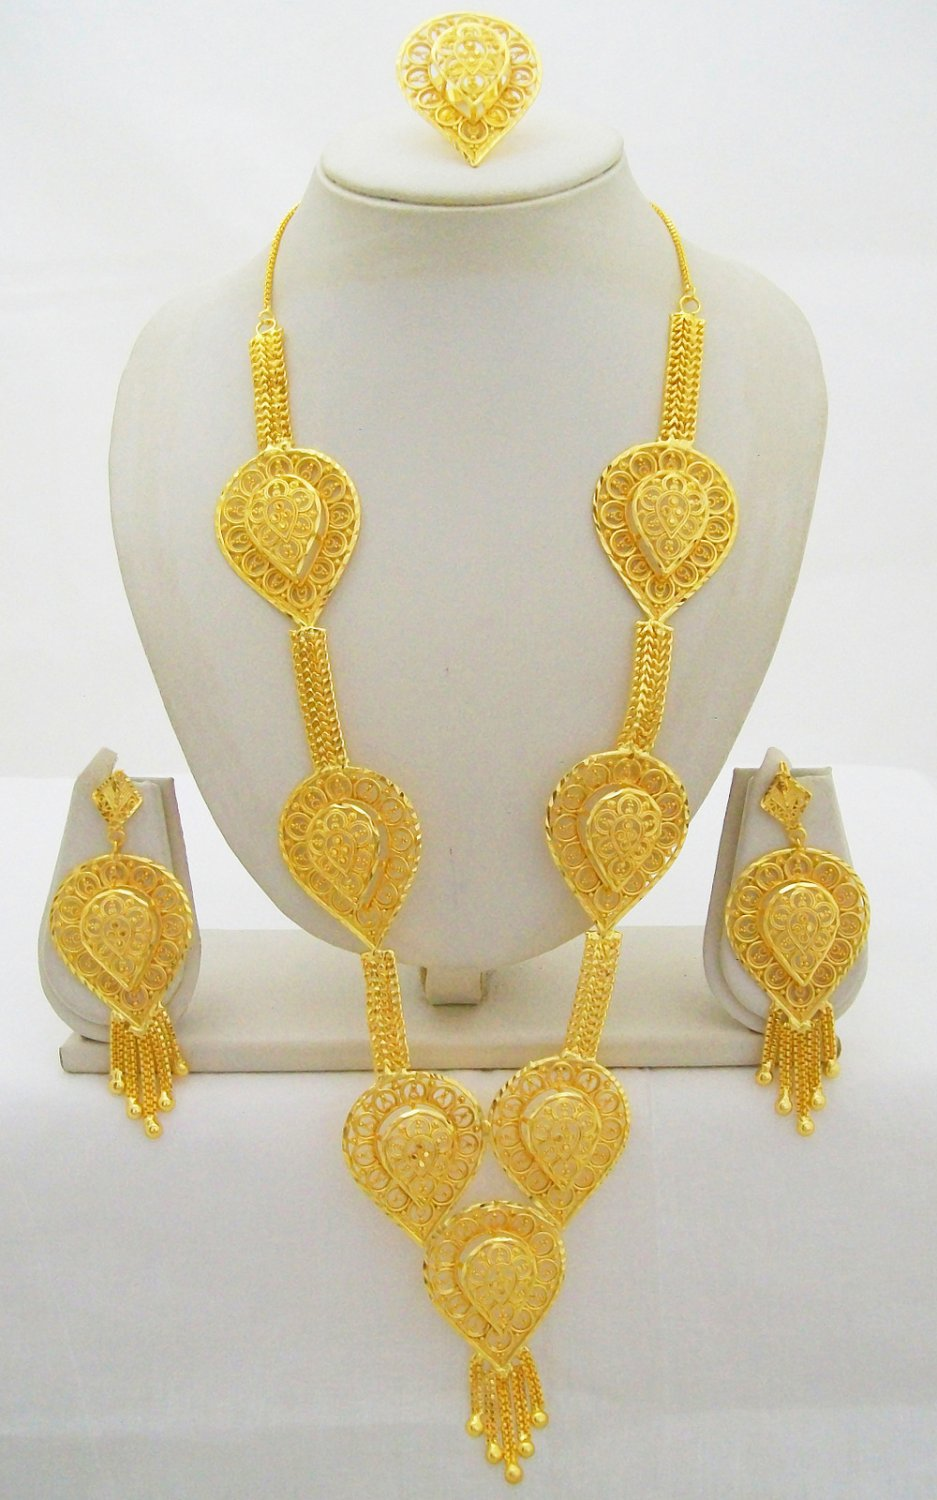 Indian Gold Plated Rani Haar Necklace Long Wedding Bridal Filigree Jewelry Set